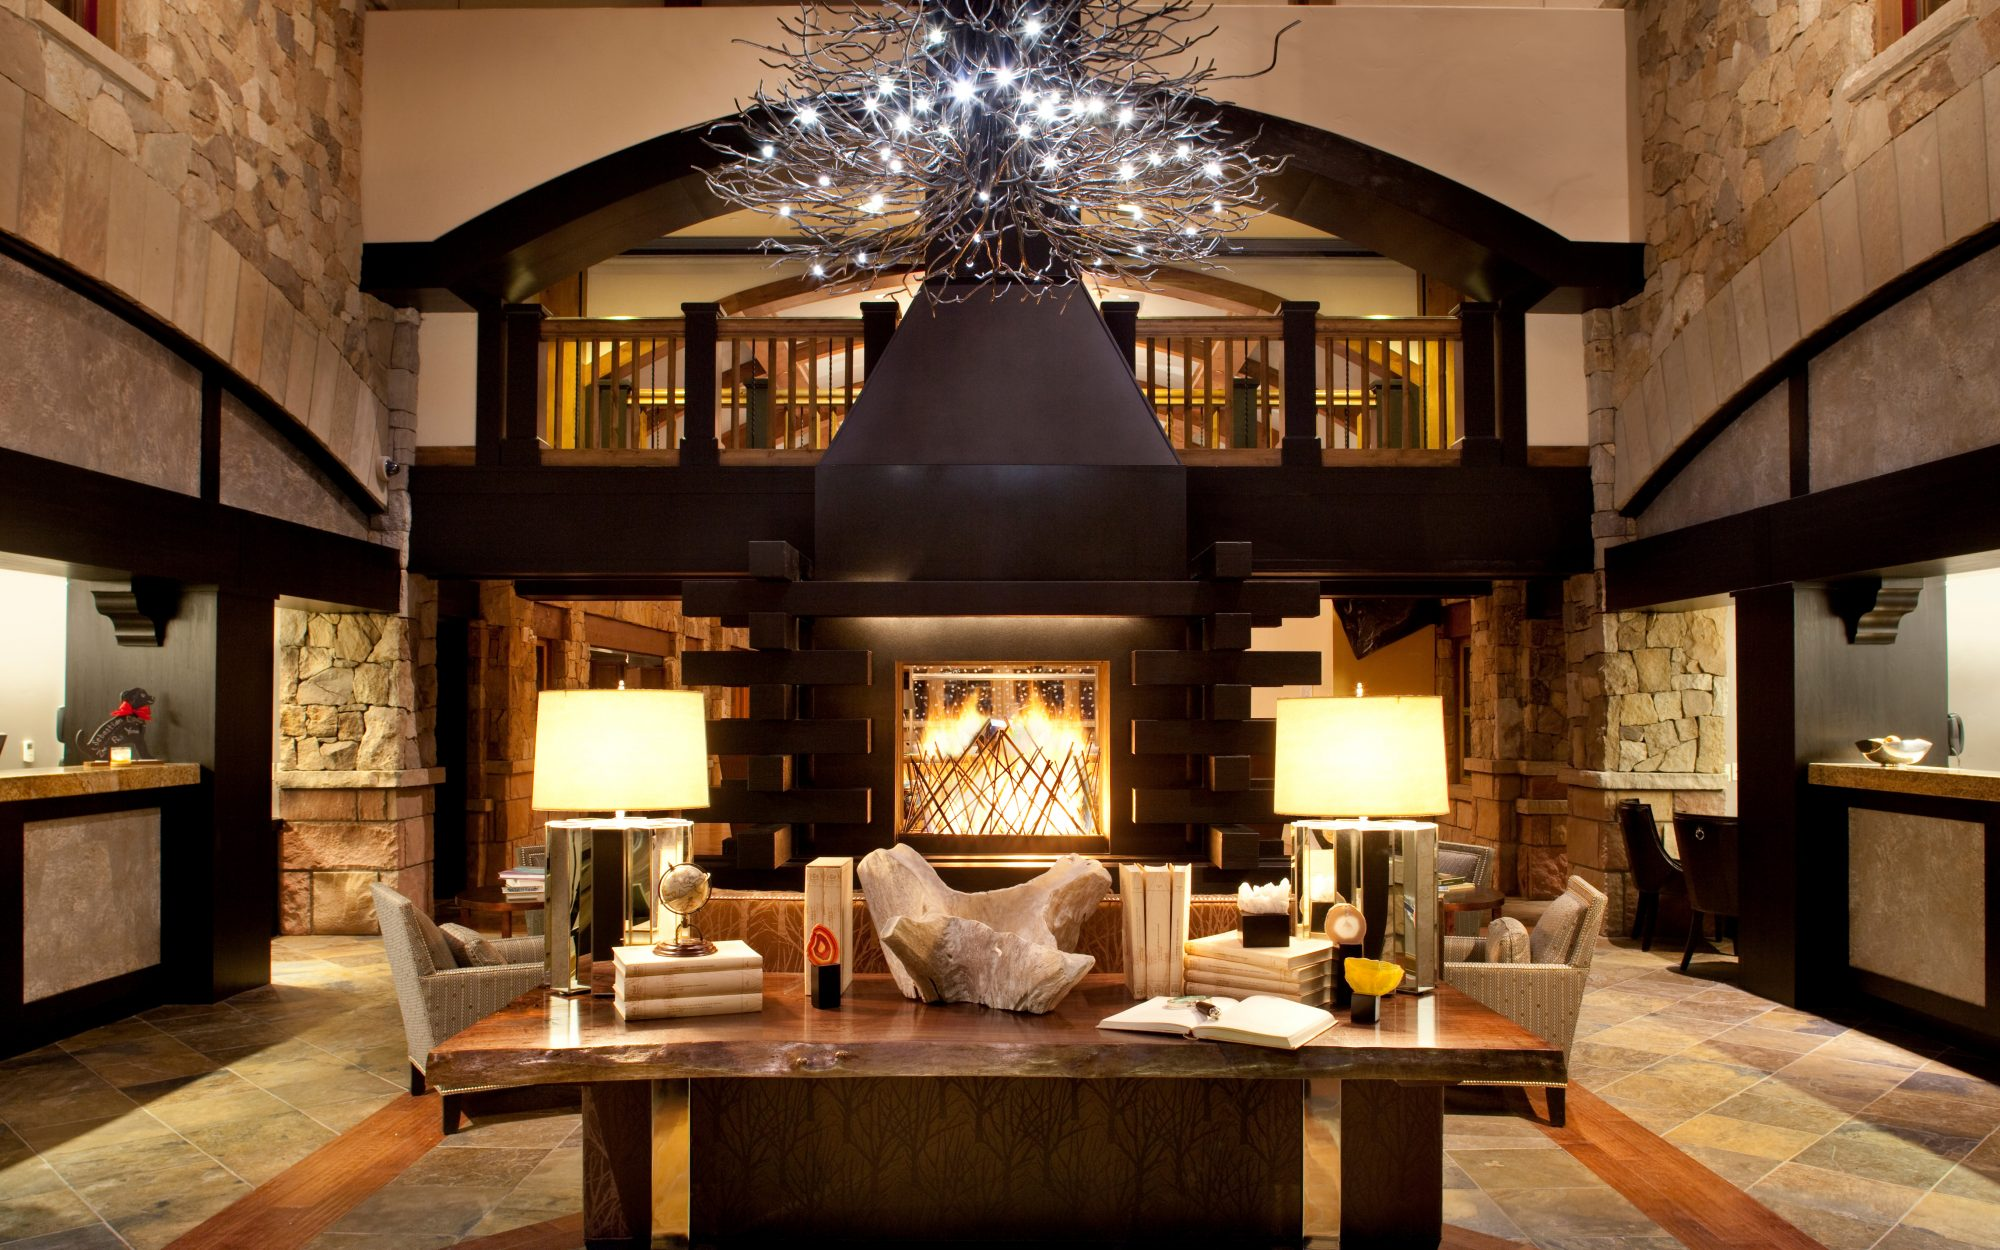 Best Resorts in the Continental U.S.: Sebastian Vail—A Timbers Resort, Vail, Colorado